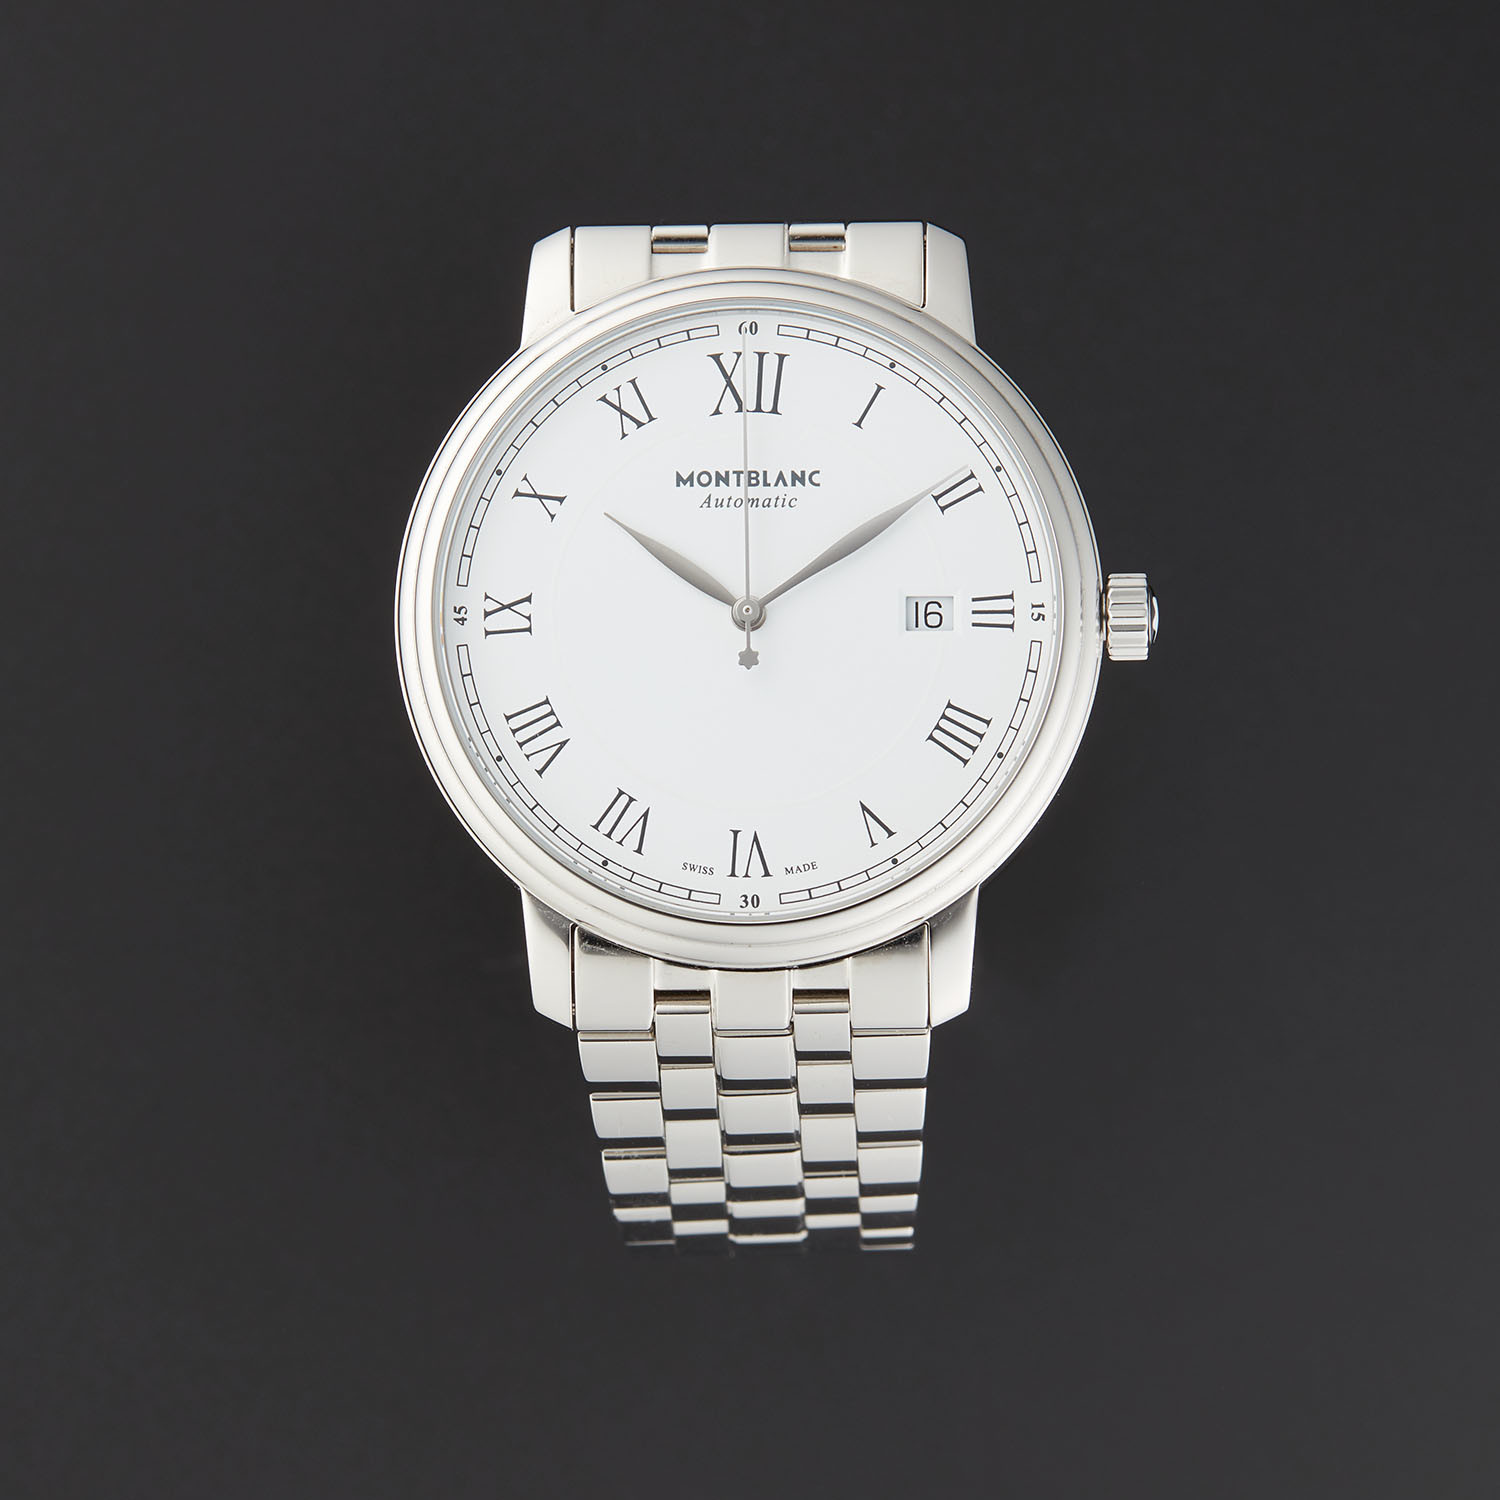 536af42330d 1893a9a68bb776396b5c4dc31ca5ecac medium · Montblanc Tradition Date Automatic  ...